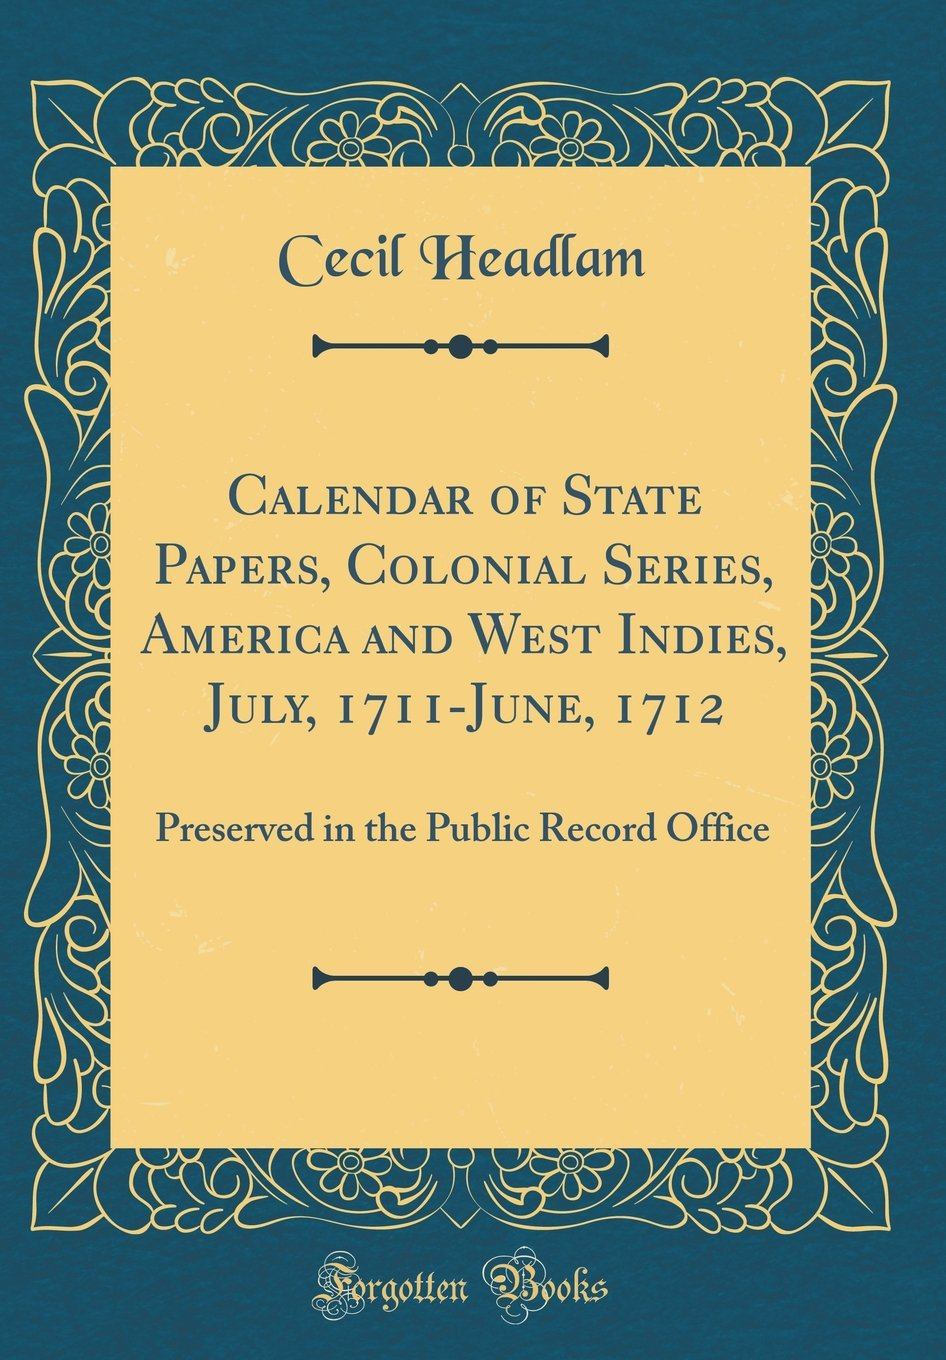 Calendar of State Papers, Colonial Series, America and West Indies, July, 1711-June, 1712: Preserved in the Public Record Office (Classic Reprint) ebook